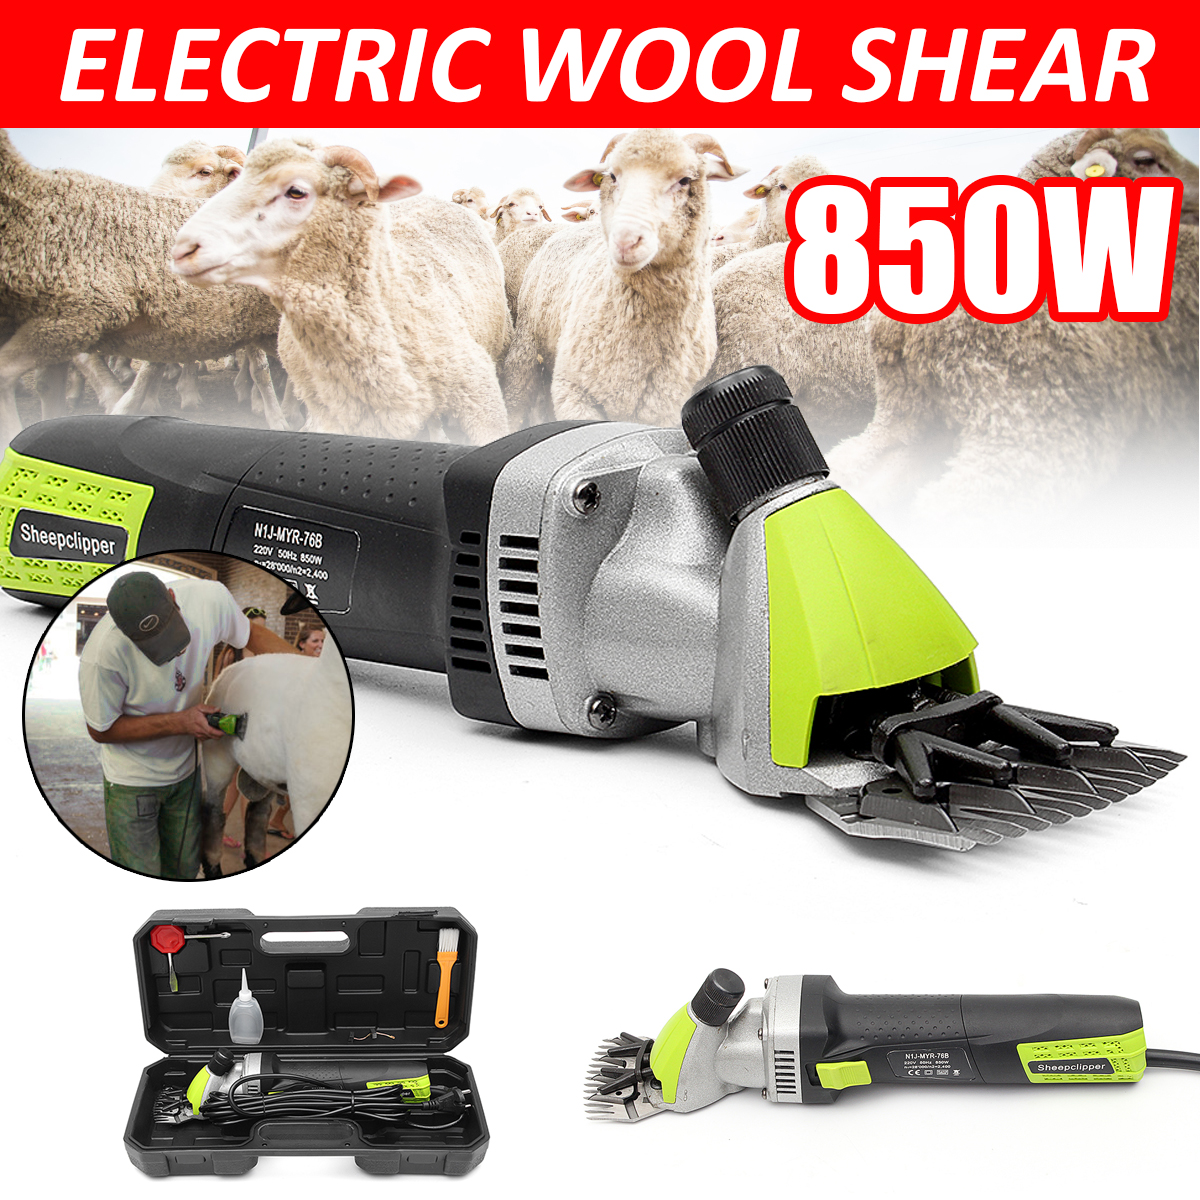 220V 850W Electric Wool Shearing Supplies Sheep Goats Clipper Farm Animal Electric Trimmer Tool for Sheep Shearing Machine new 680w sheep wool clipper electric sheep goats shearing clipper shears 1 set 13 straight tooth blade comb